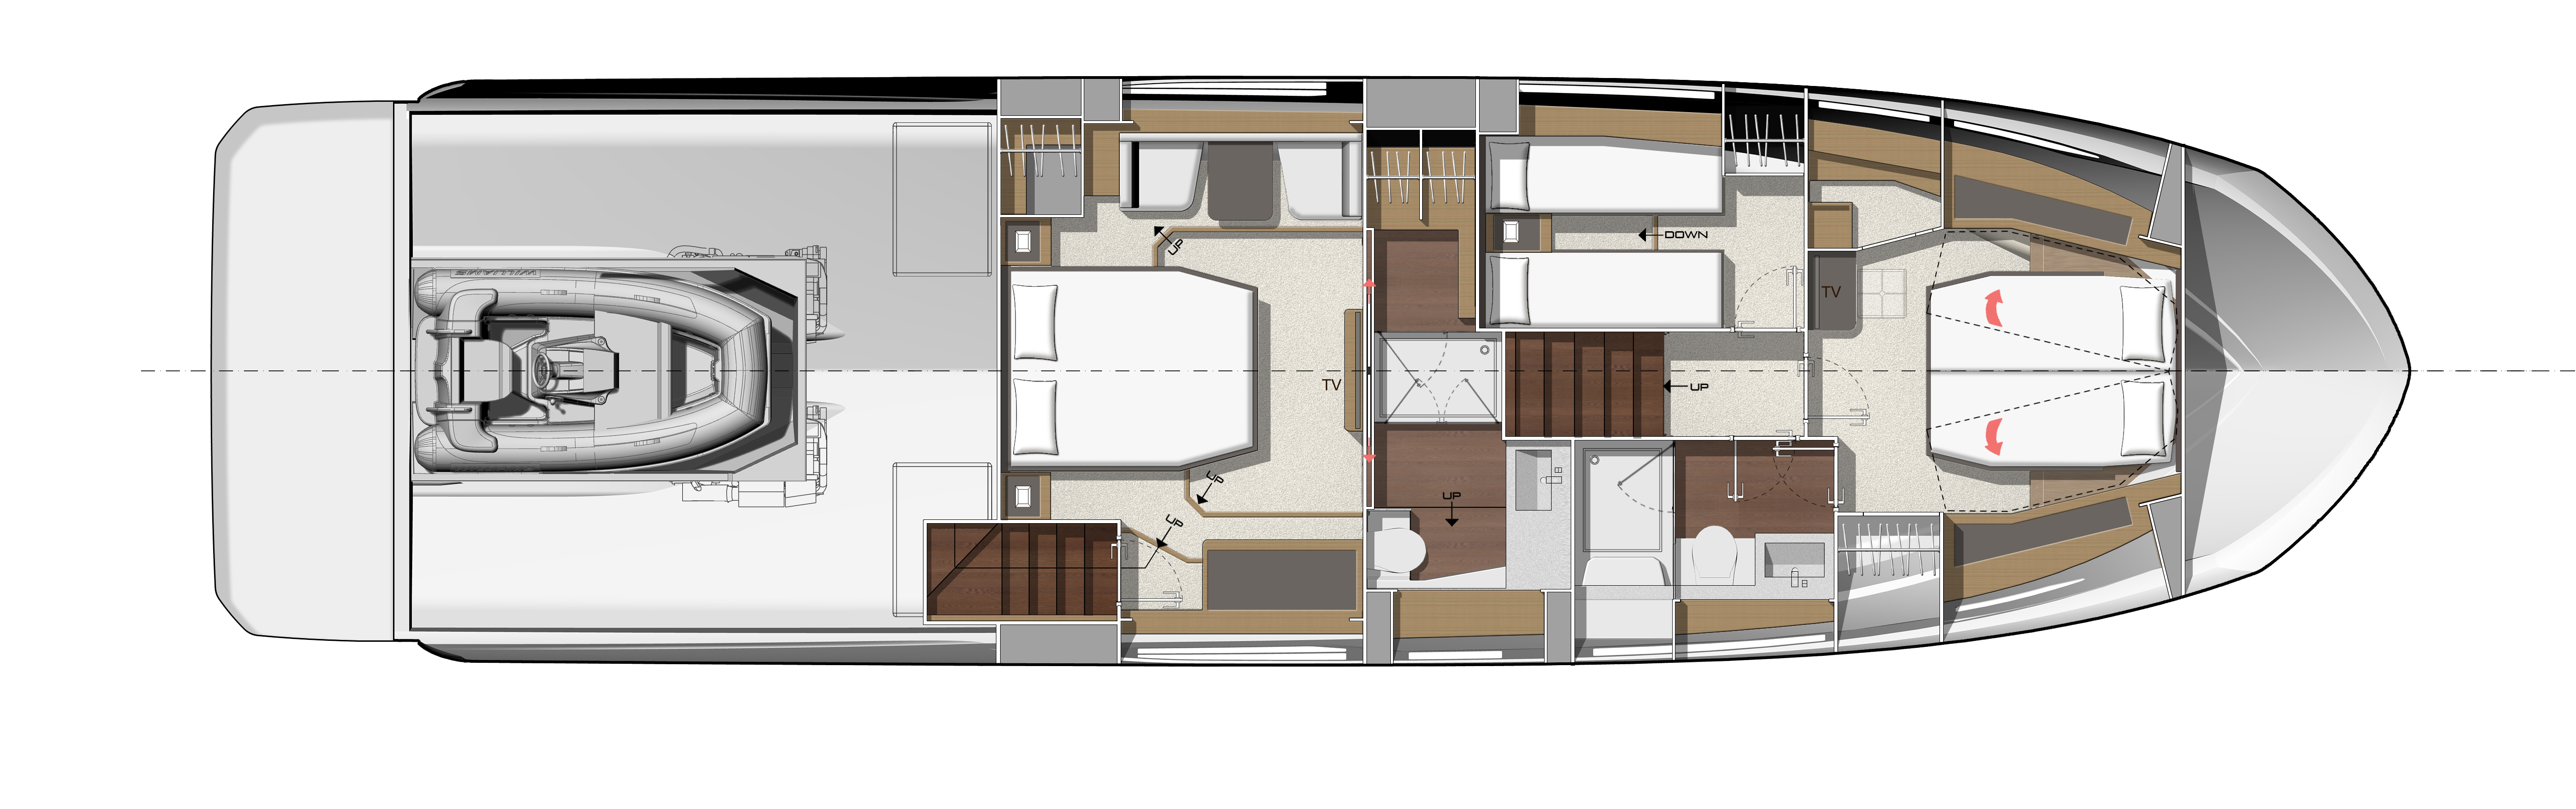 PRESTIGE-590S---Layout---3C---2T---garage-